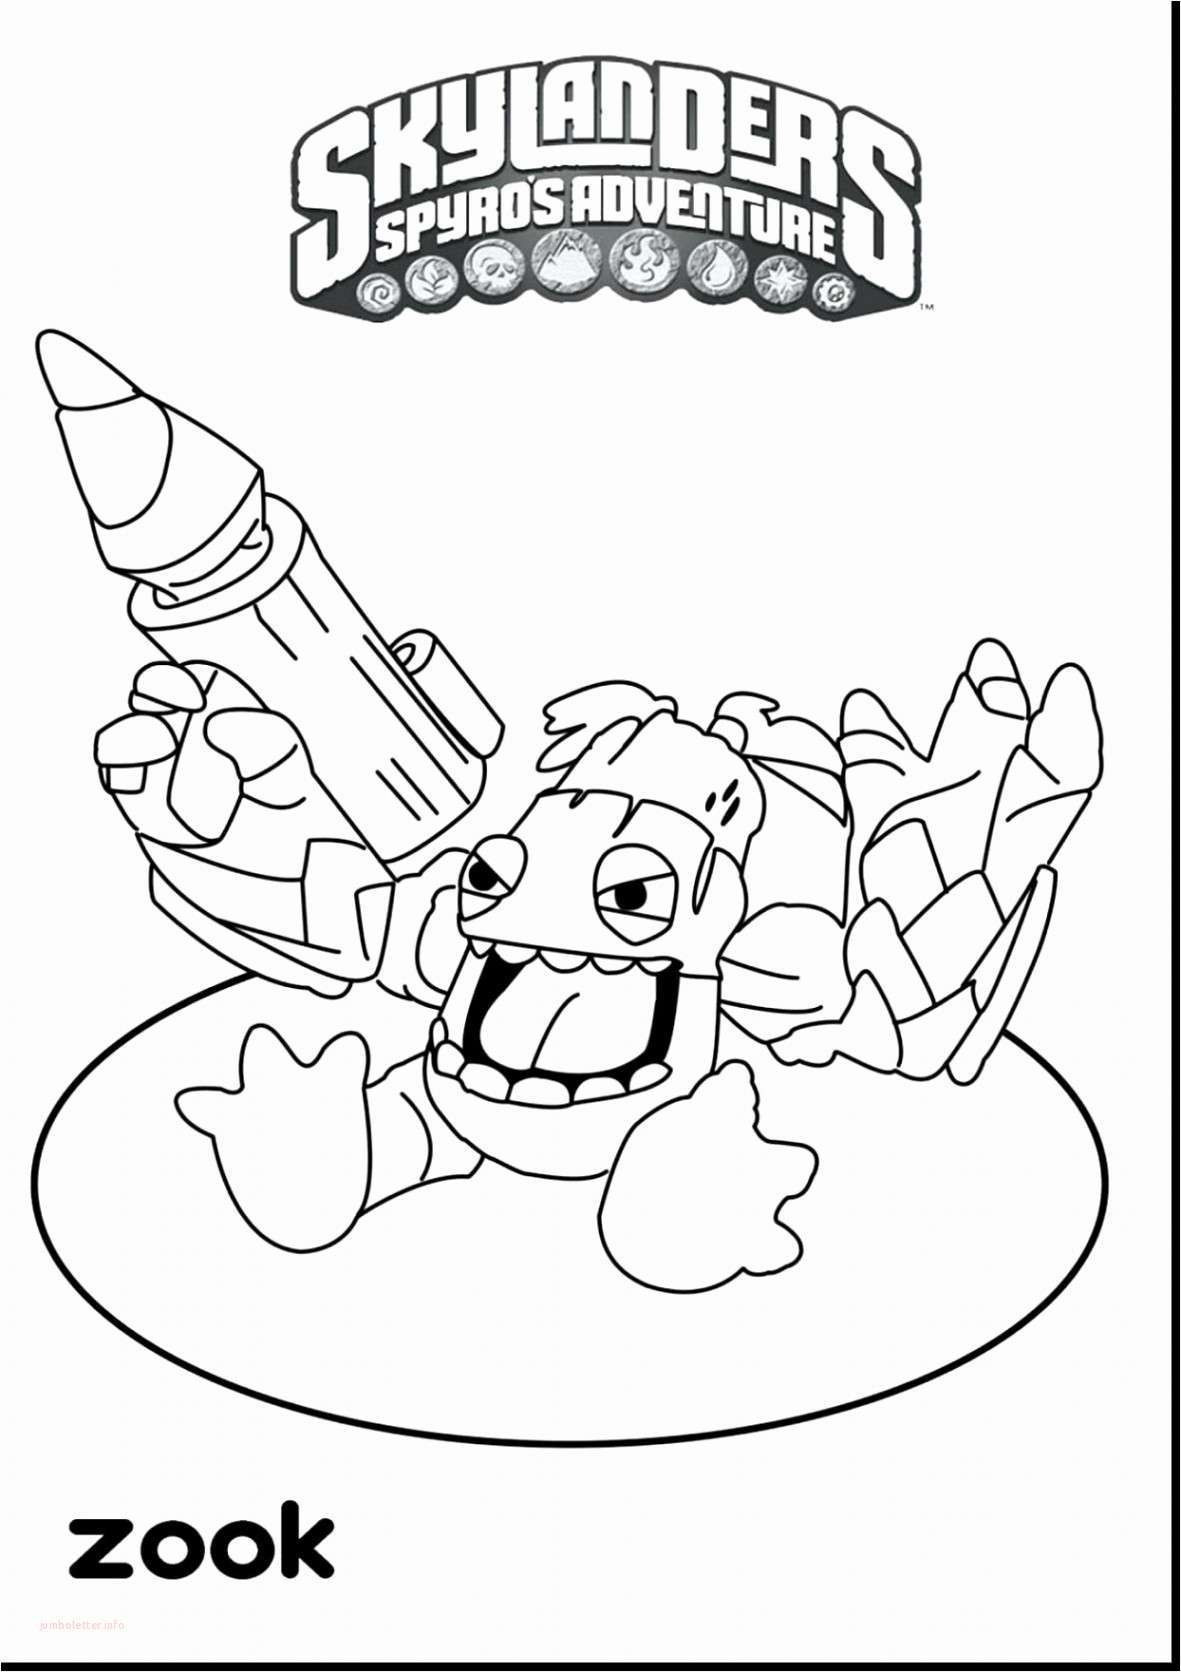 28 Sunday School Easter Coloring Pages Free Gallery ...